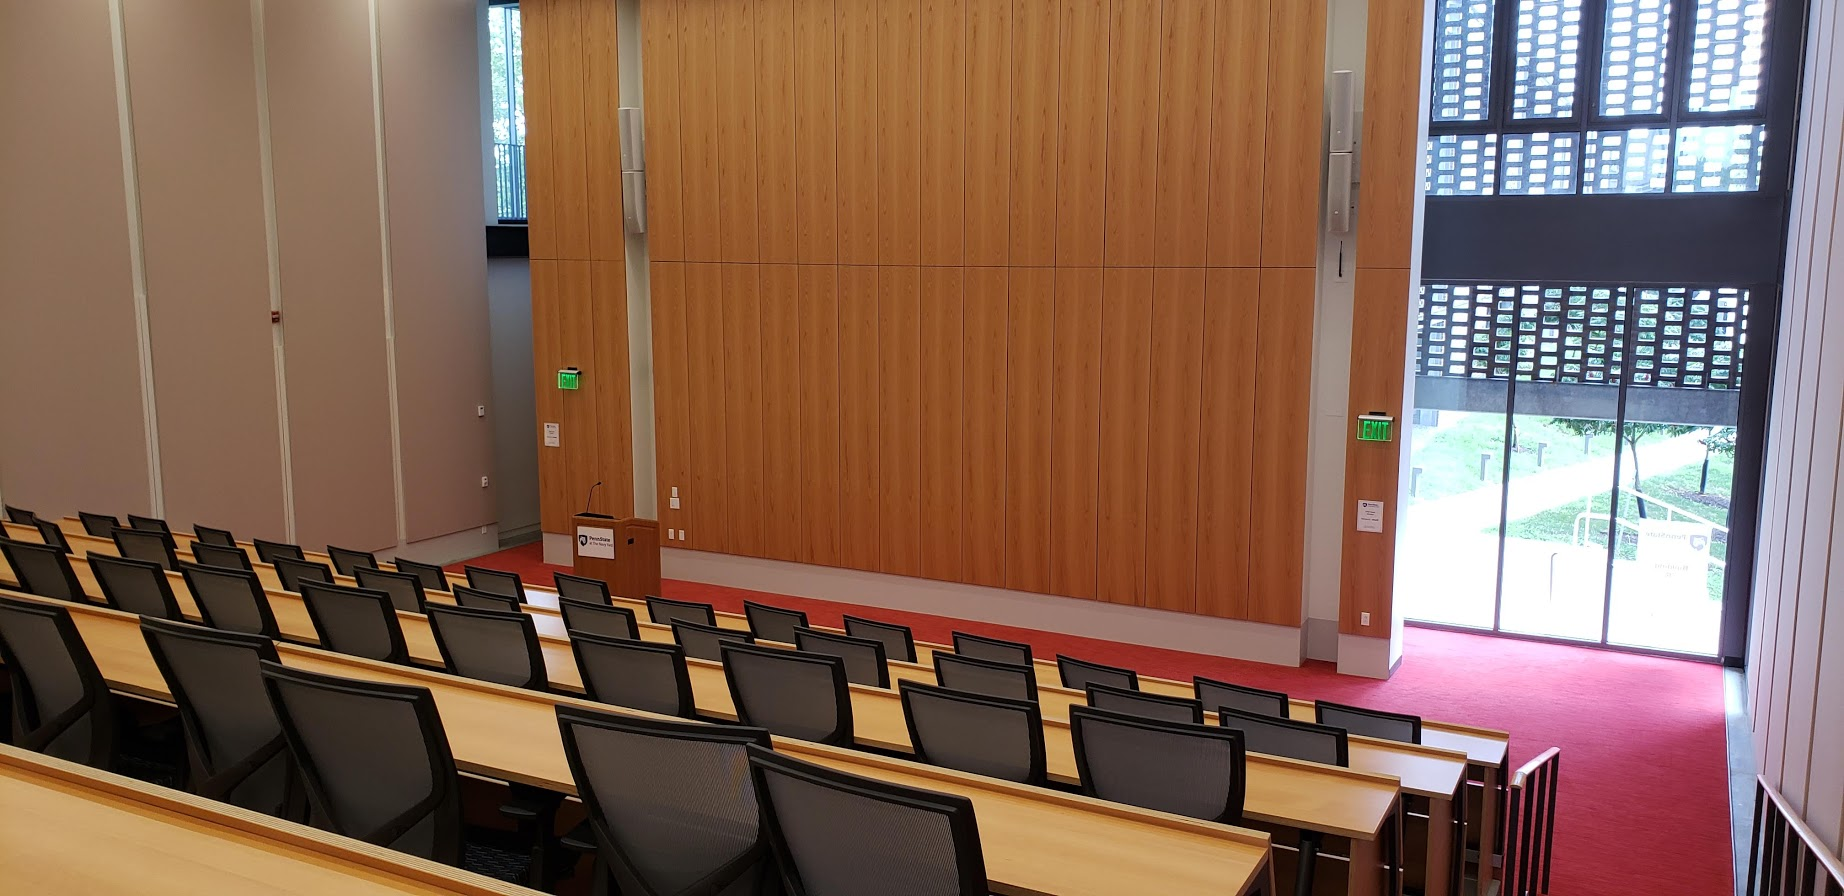 Auditorium in Building 7R